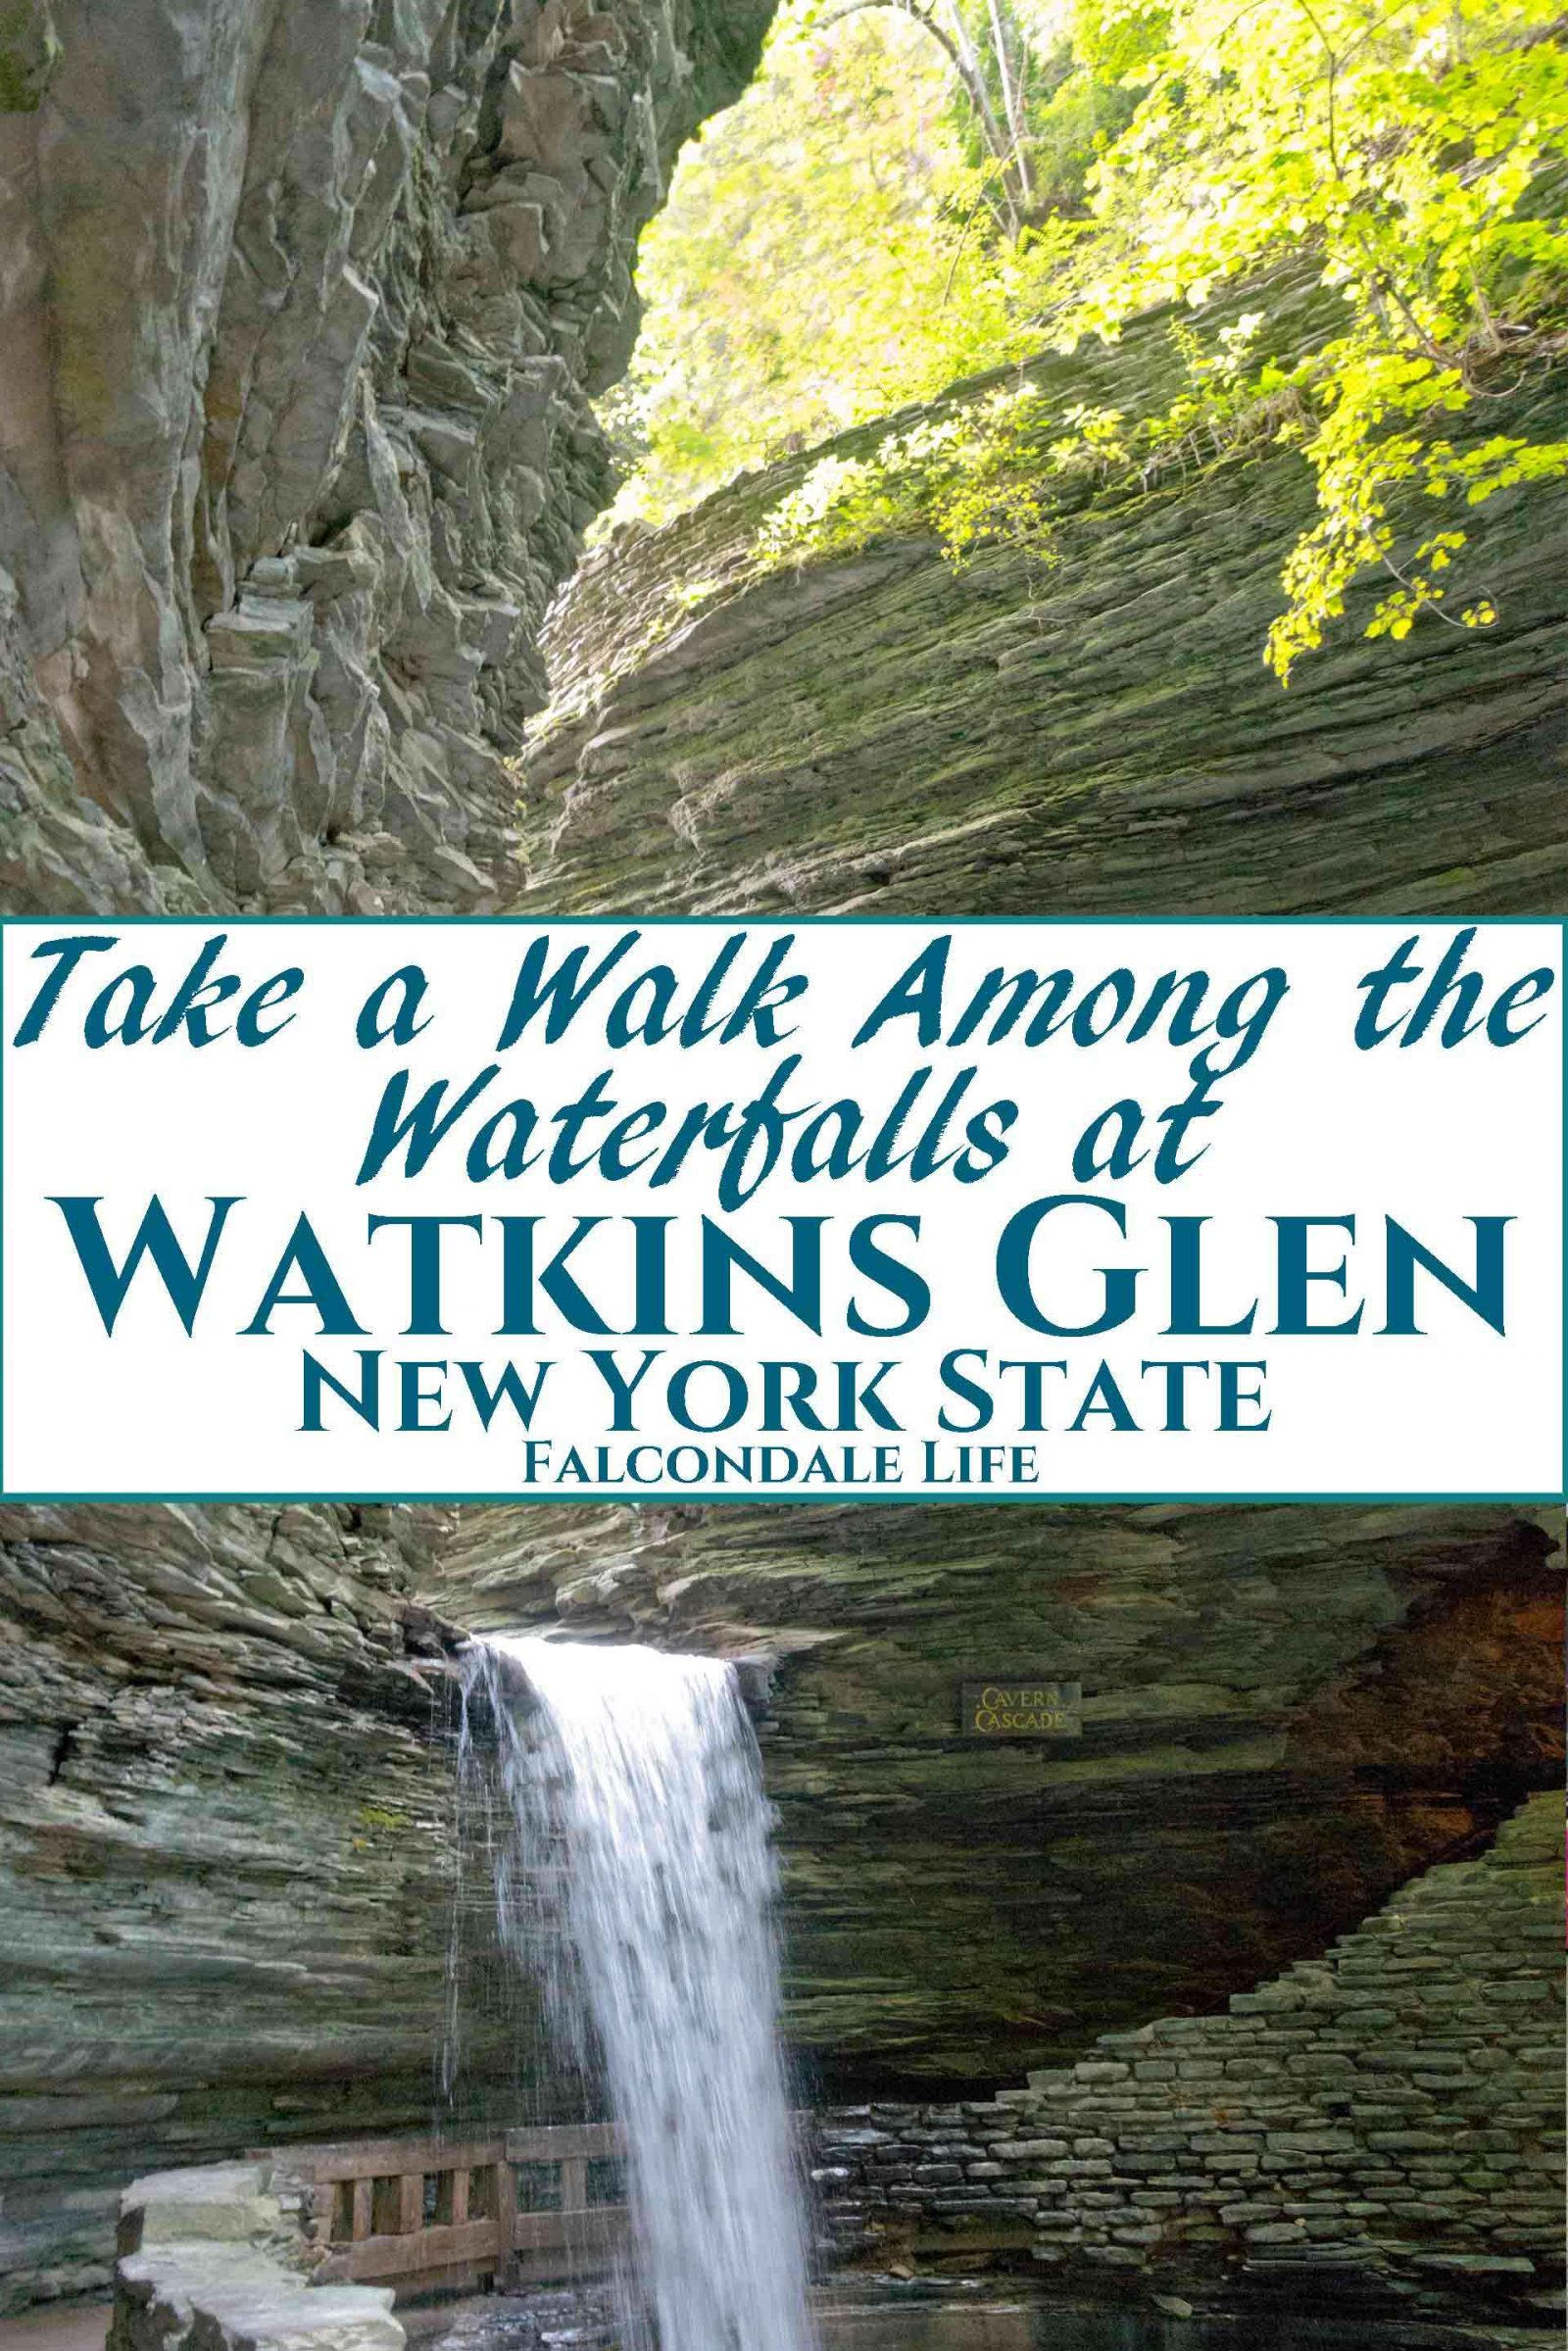 Take a Walk Among the Waterfalls at Watkins Glen, New York State